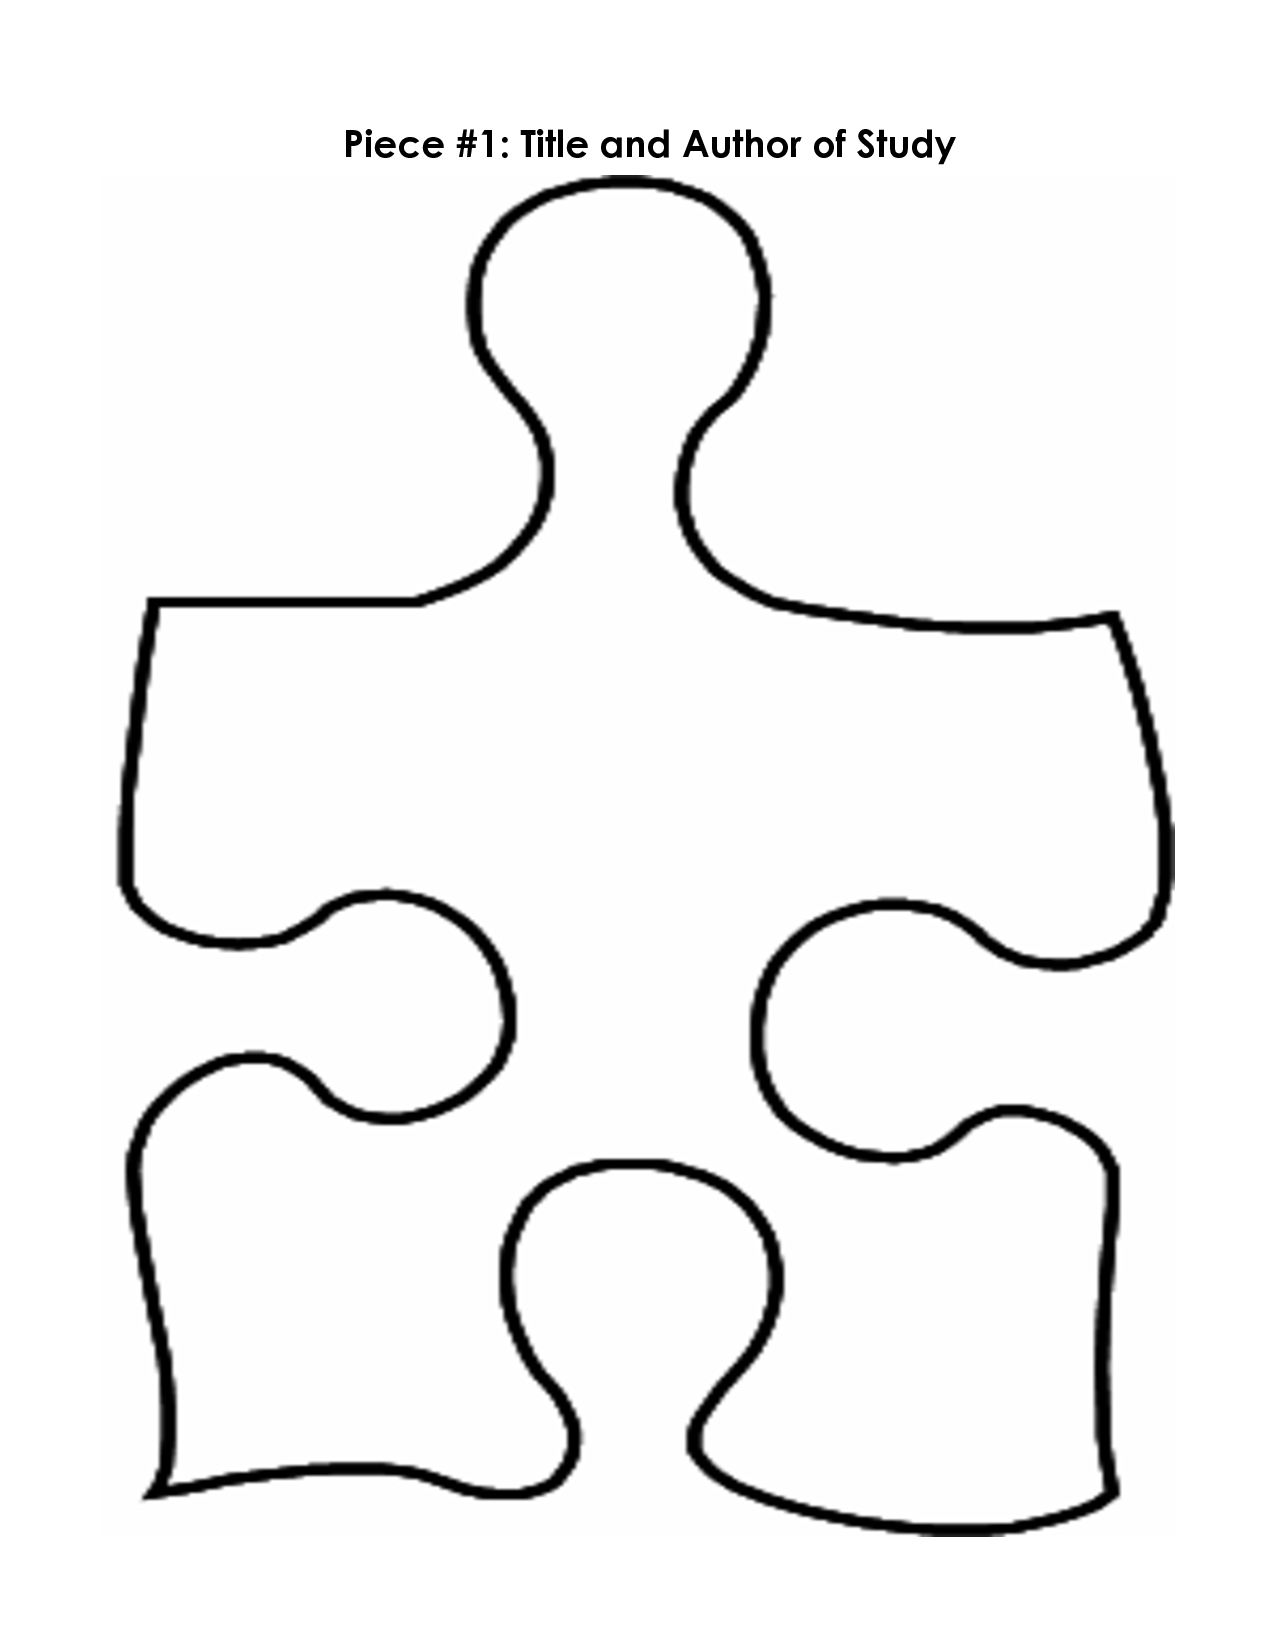 Free Puzzle Pieces Template, Download Free Clip Art, Free Clip Art - Printable 4 Piece Puzzle Template